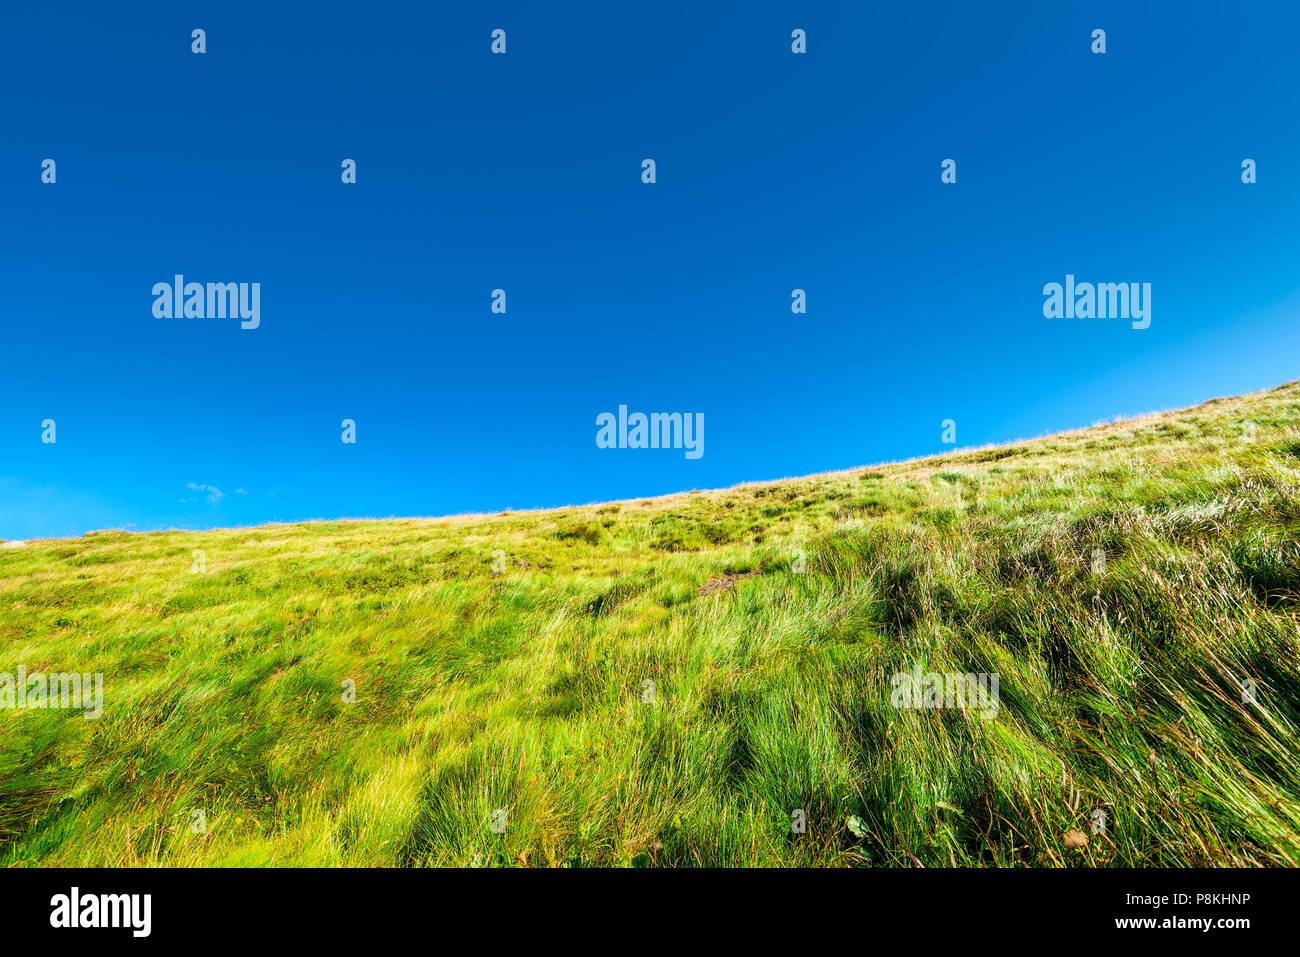 close-up of a mountainside slope covered with grass against a blue sky background - Stock Image